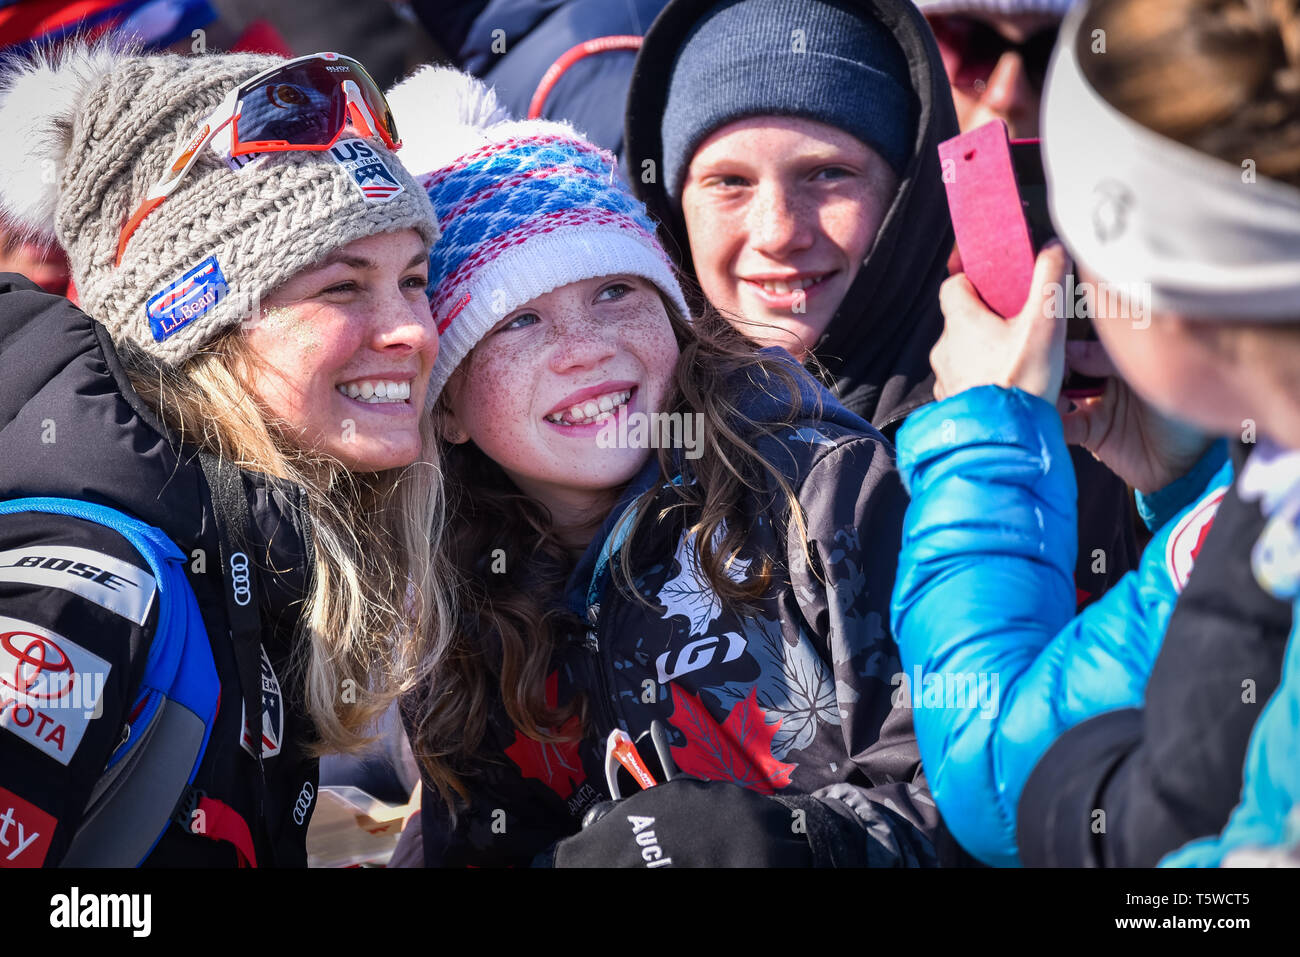 US Cross Country Ski Team member Jessie Diggins (left) poses with fans at the FIS World Cup cross country ski races in Quebec City, Canada, 2019. Stock Photo